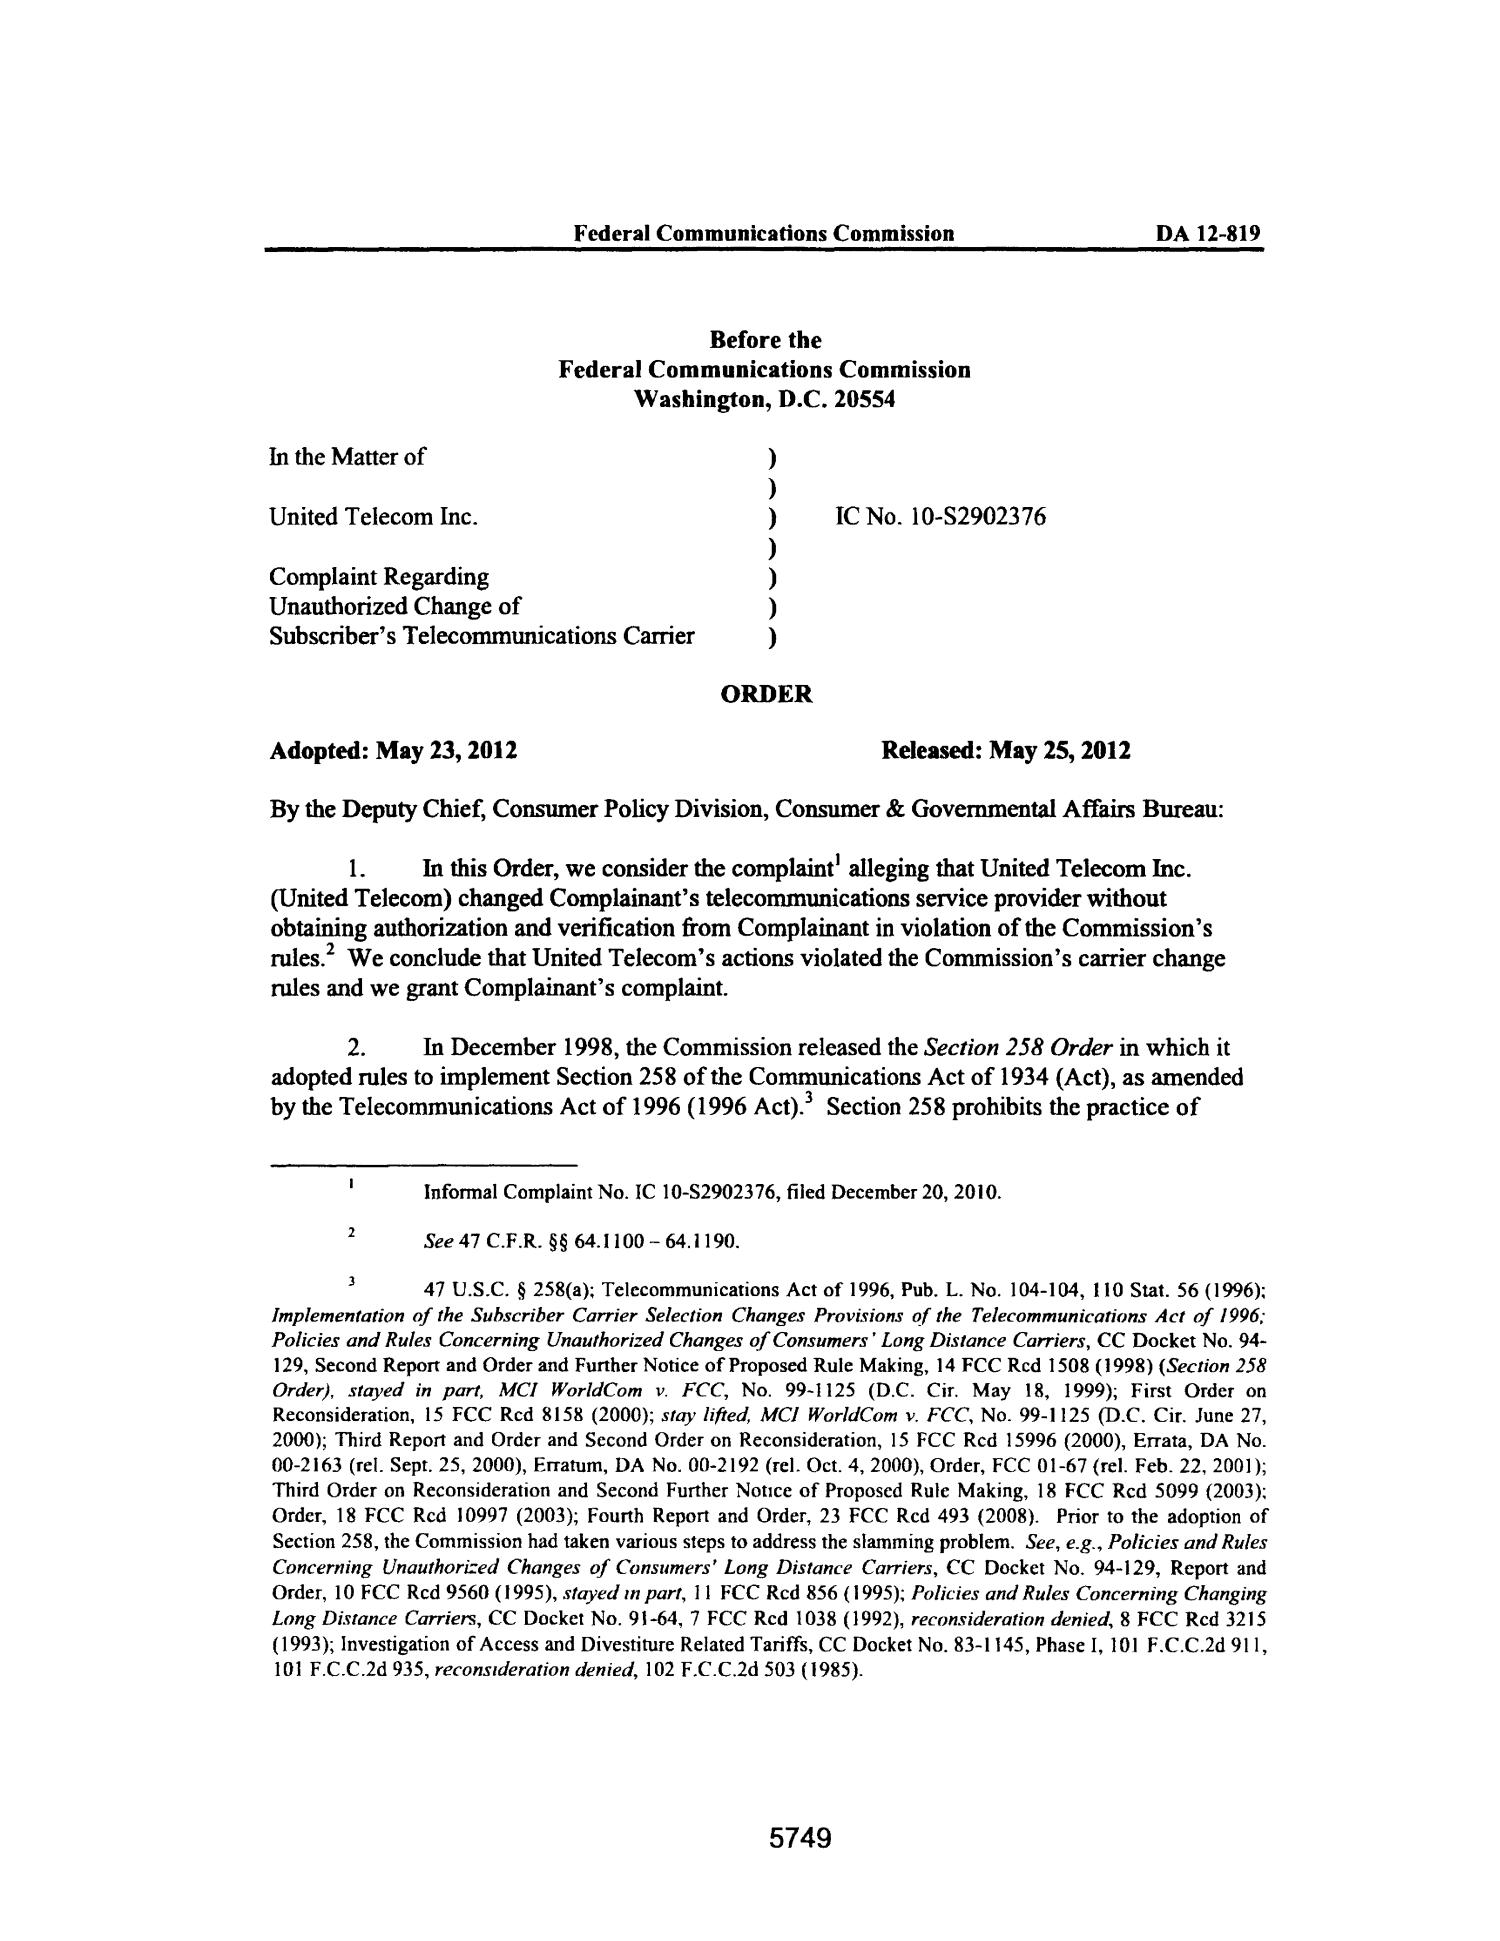 FCC Record, Volume 27, No. 7, Pages 5674 to 6652, May 23 - June 15, 2012                                                                                                      5749